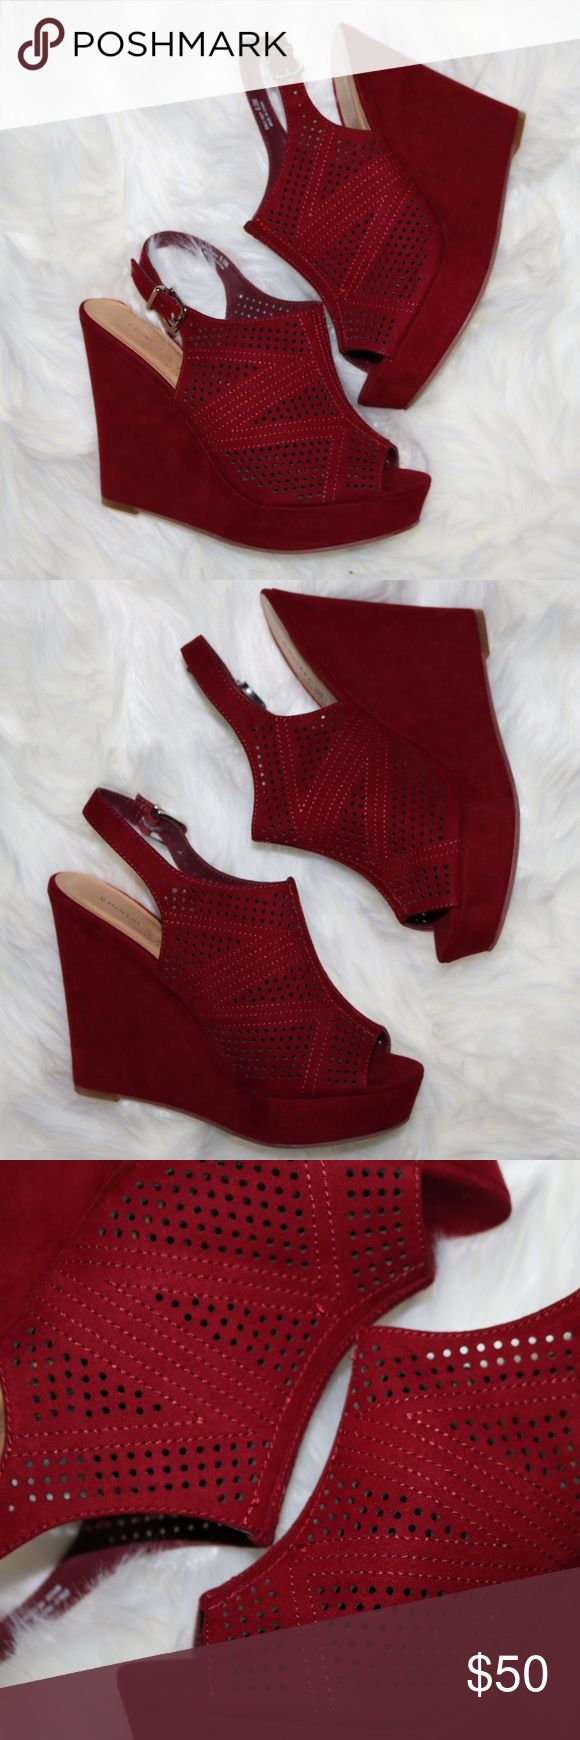 Chinese Laundry laser cut red wedge size 8.5 NWOT Chinese Laundry laser cut red wedge size 8.5 NWOT Chinese Laundry Shoes Wedges